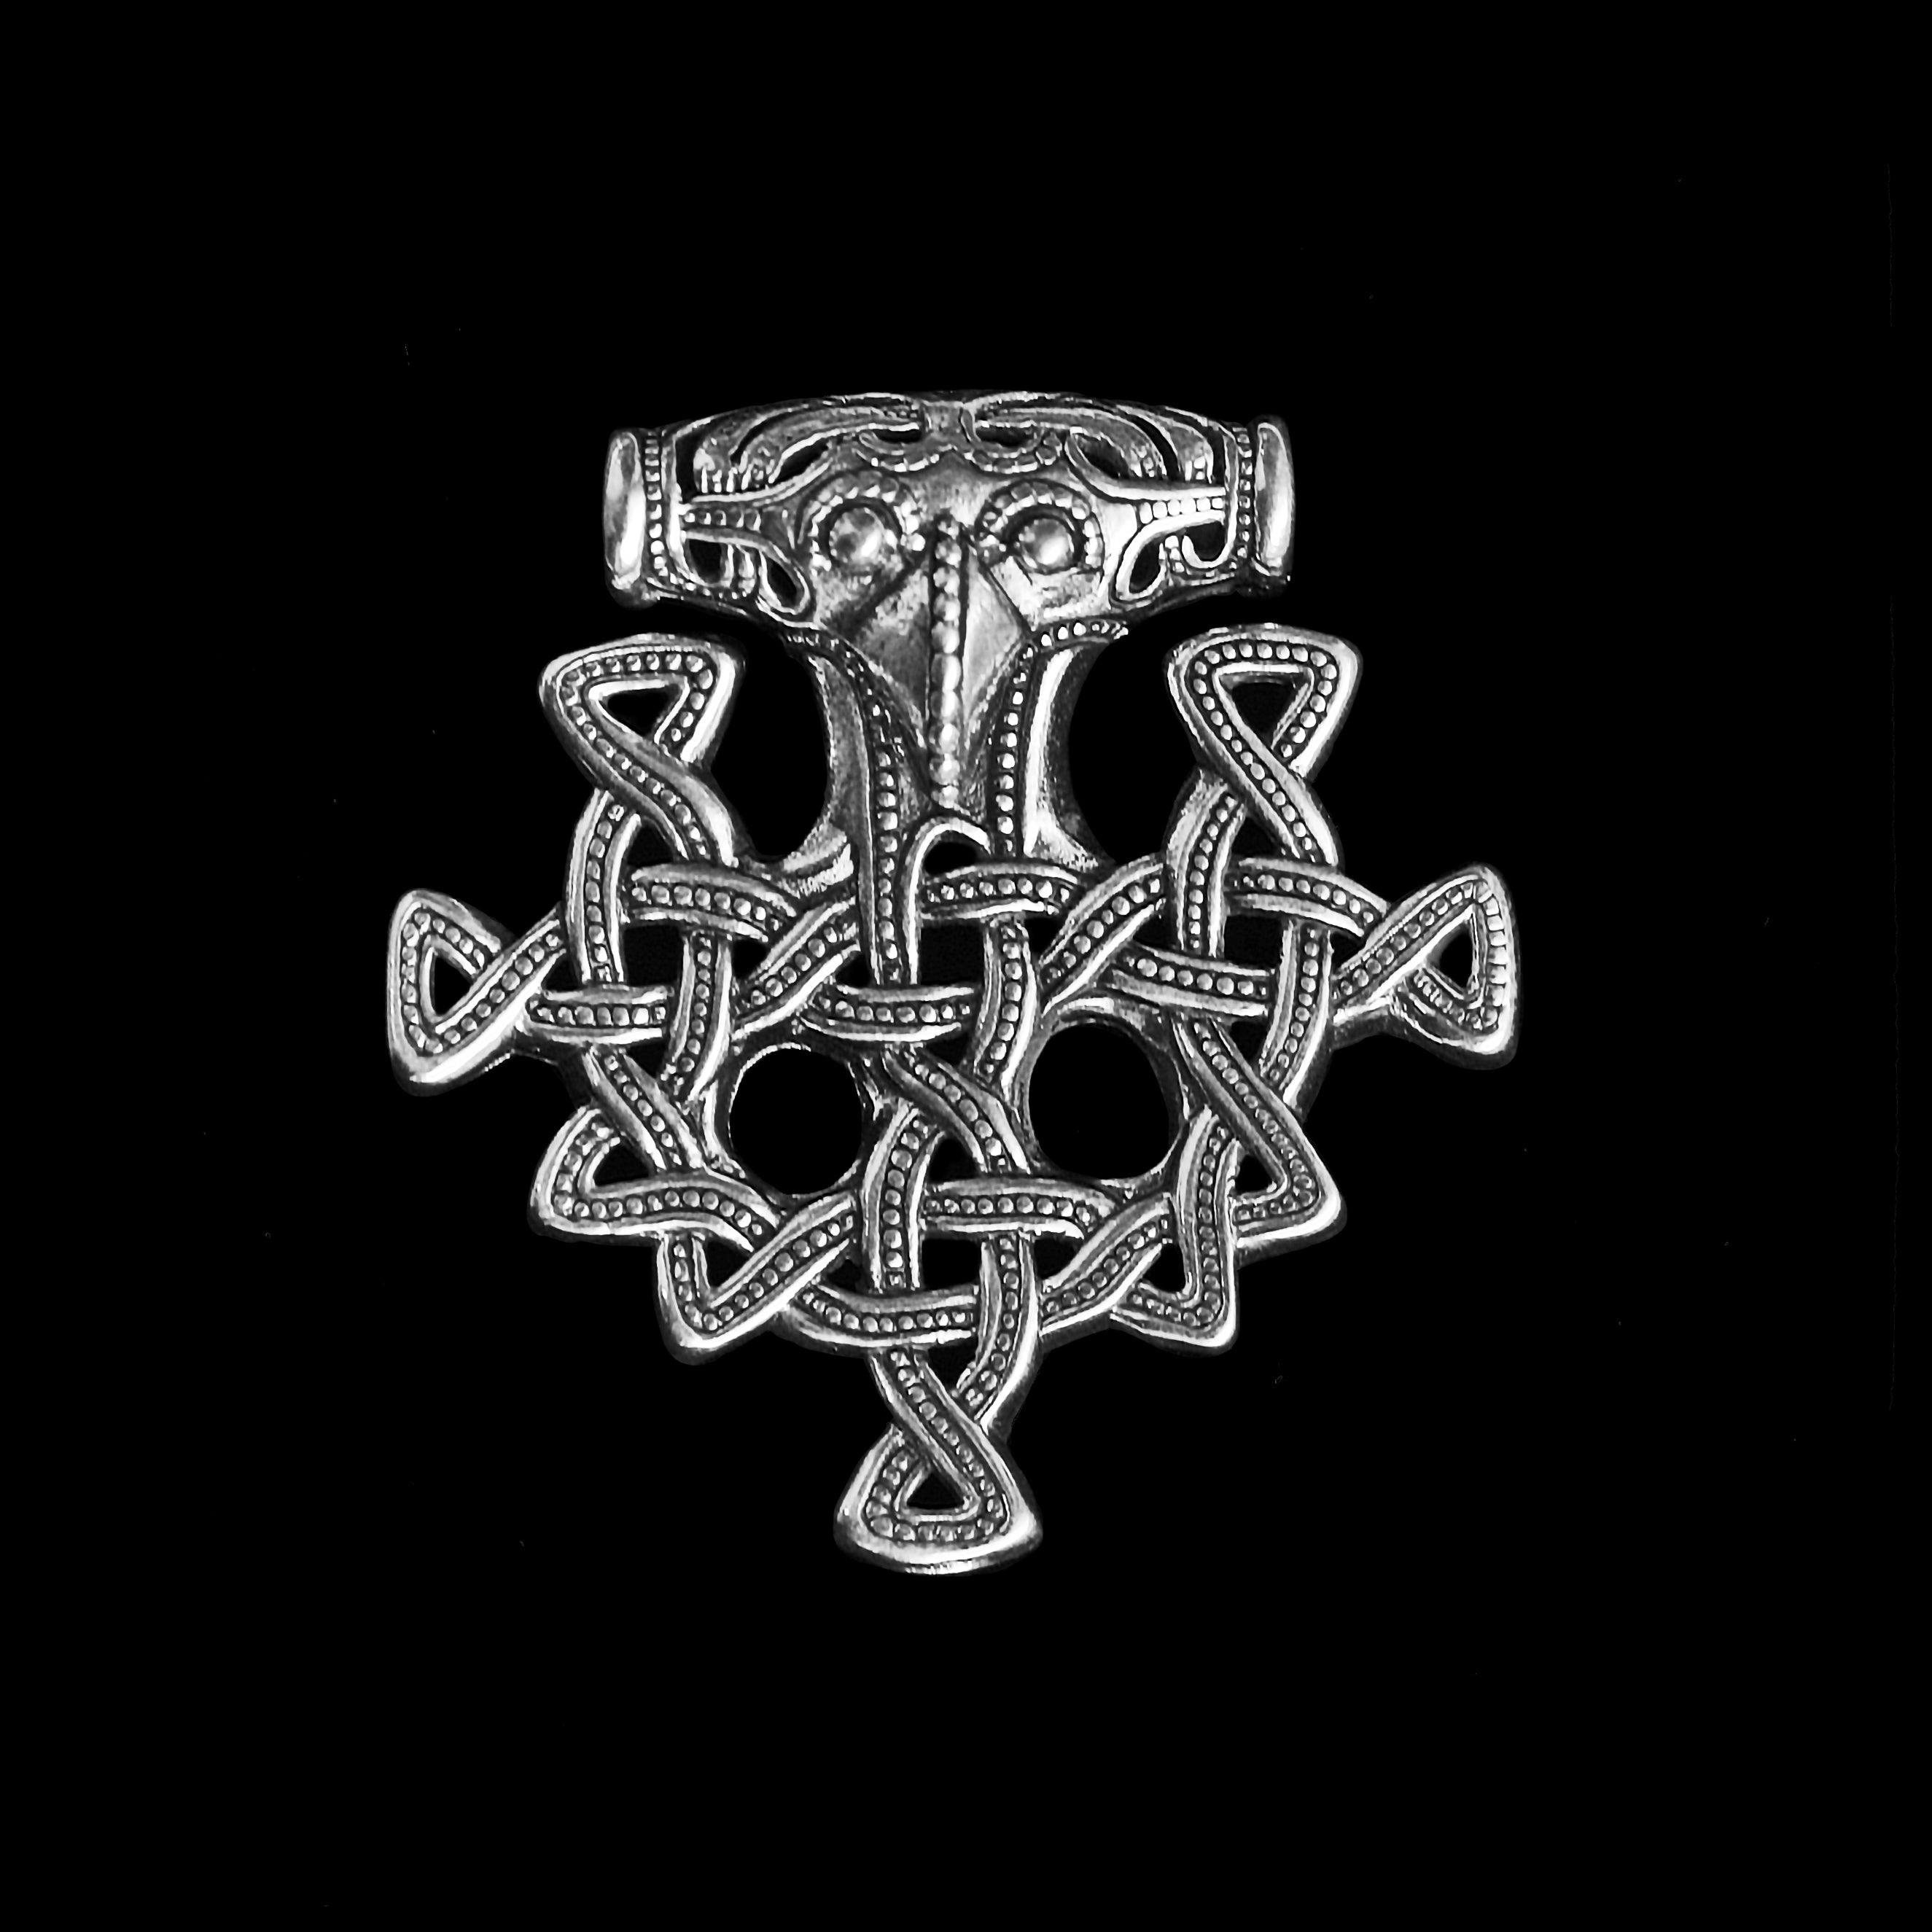 Silver Hiddensee Replica Thors Hammer Pendant